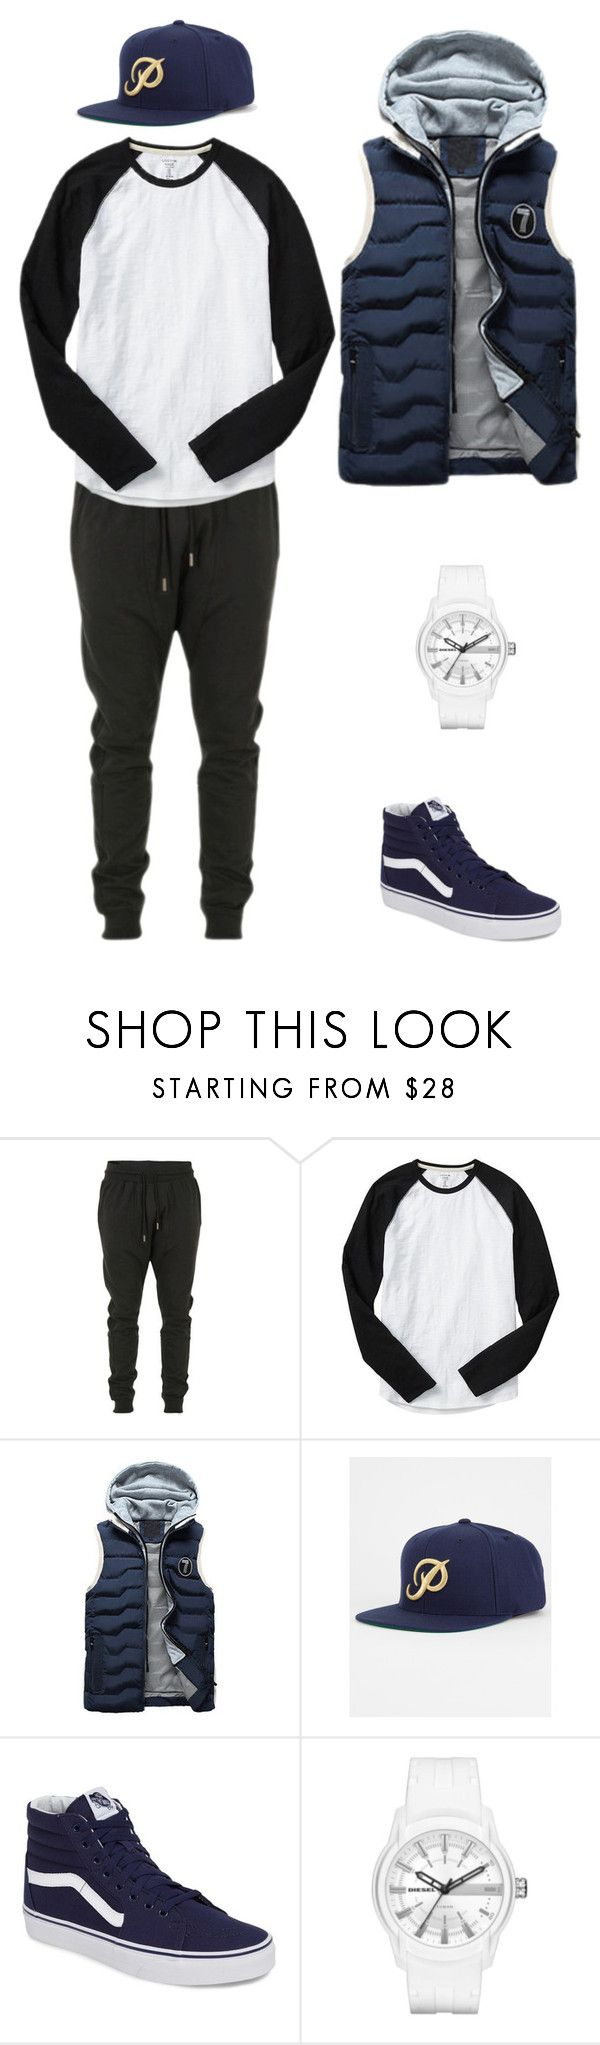 """Untitled #29"" by darkmortal24 on Polyvore featuring Blood Brother, Gap, Vans and Diesel"